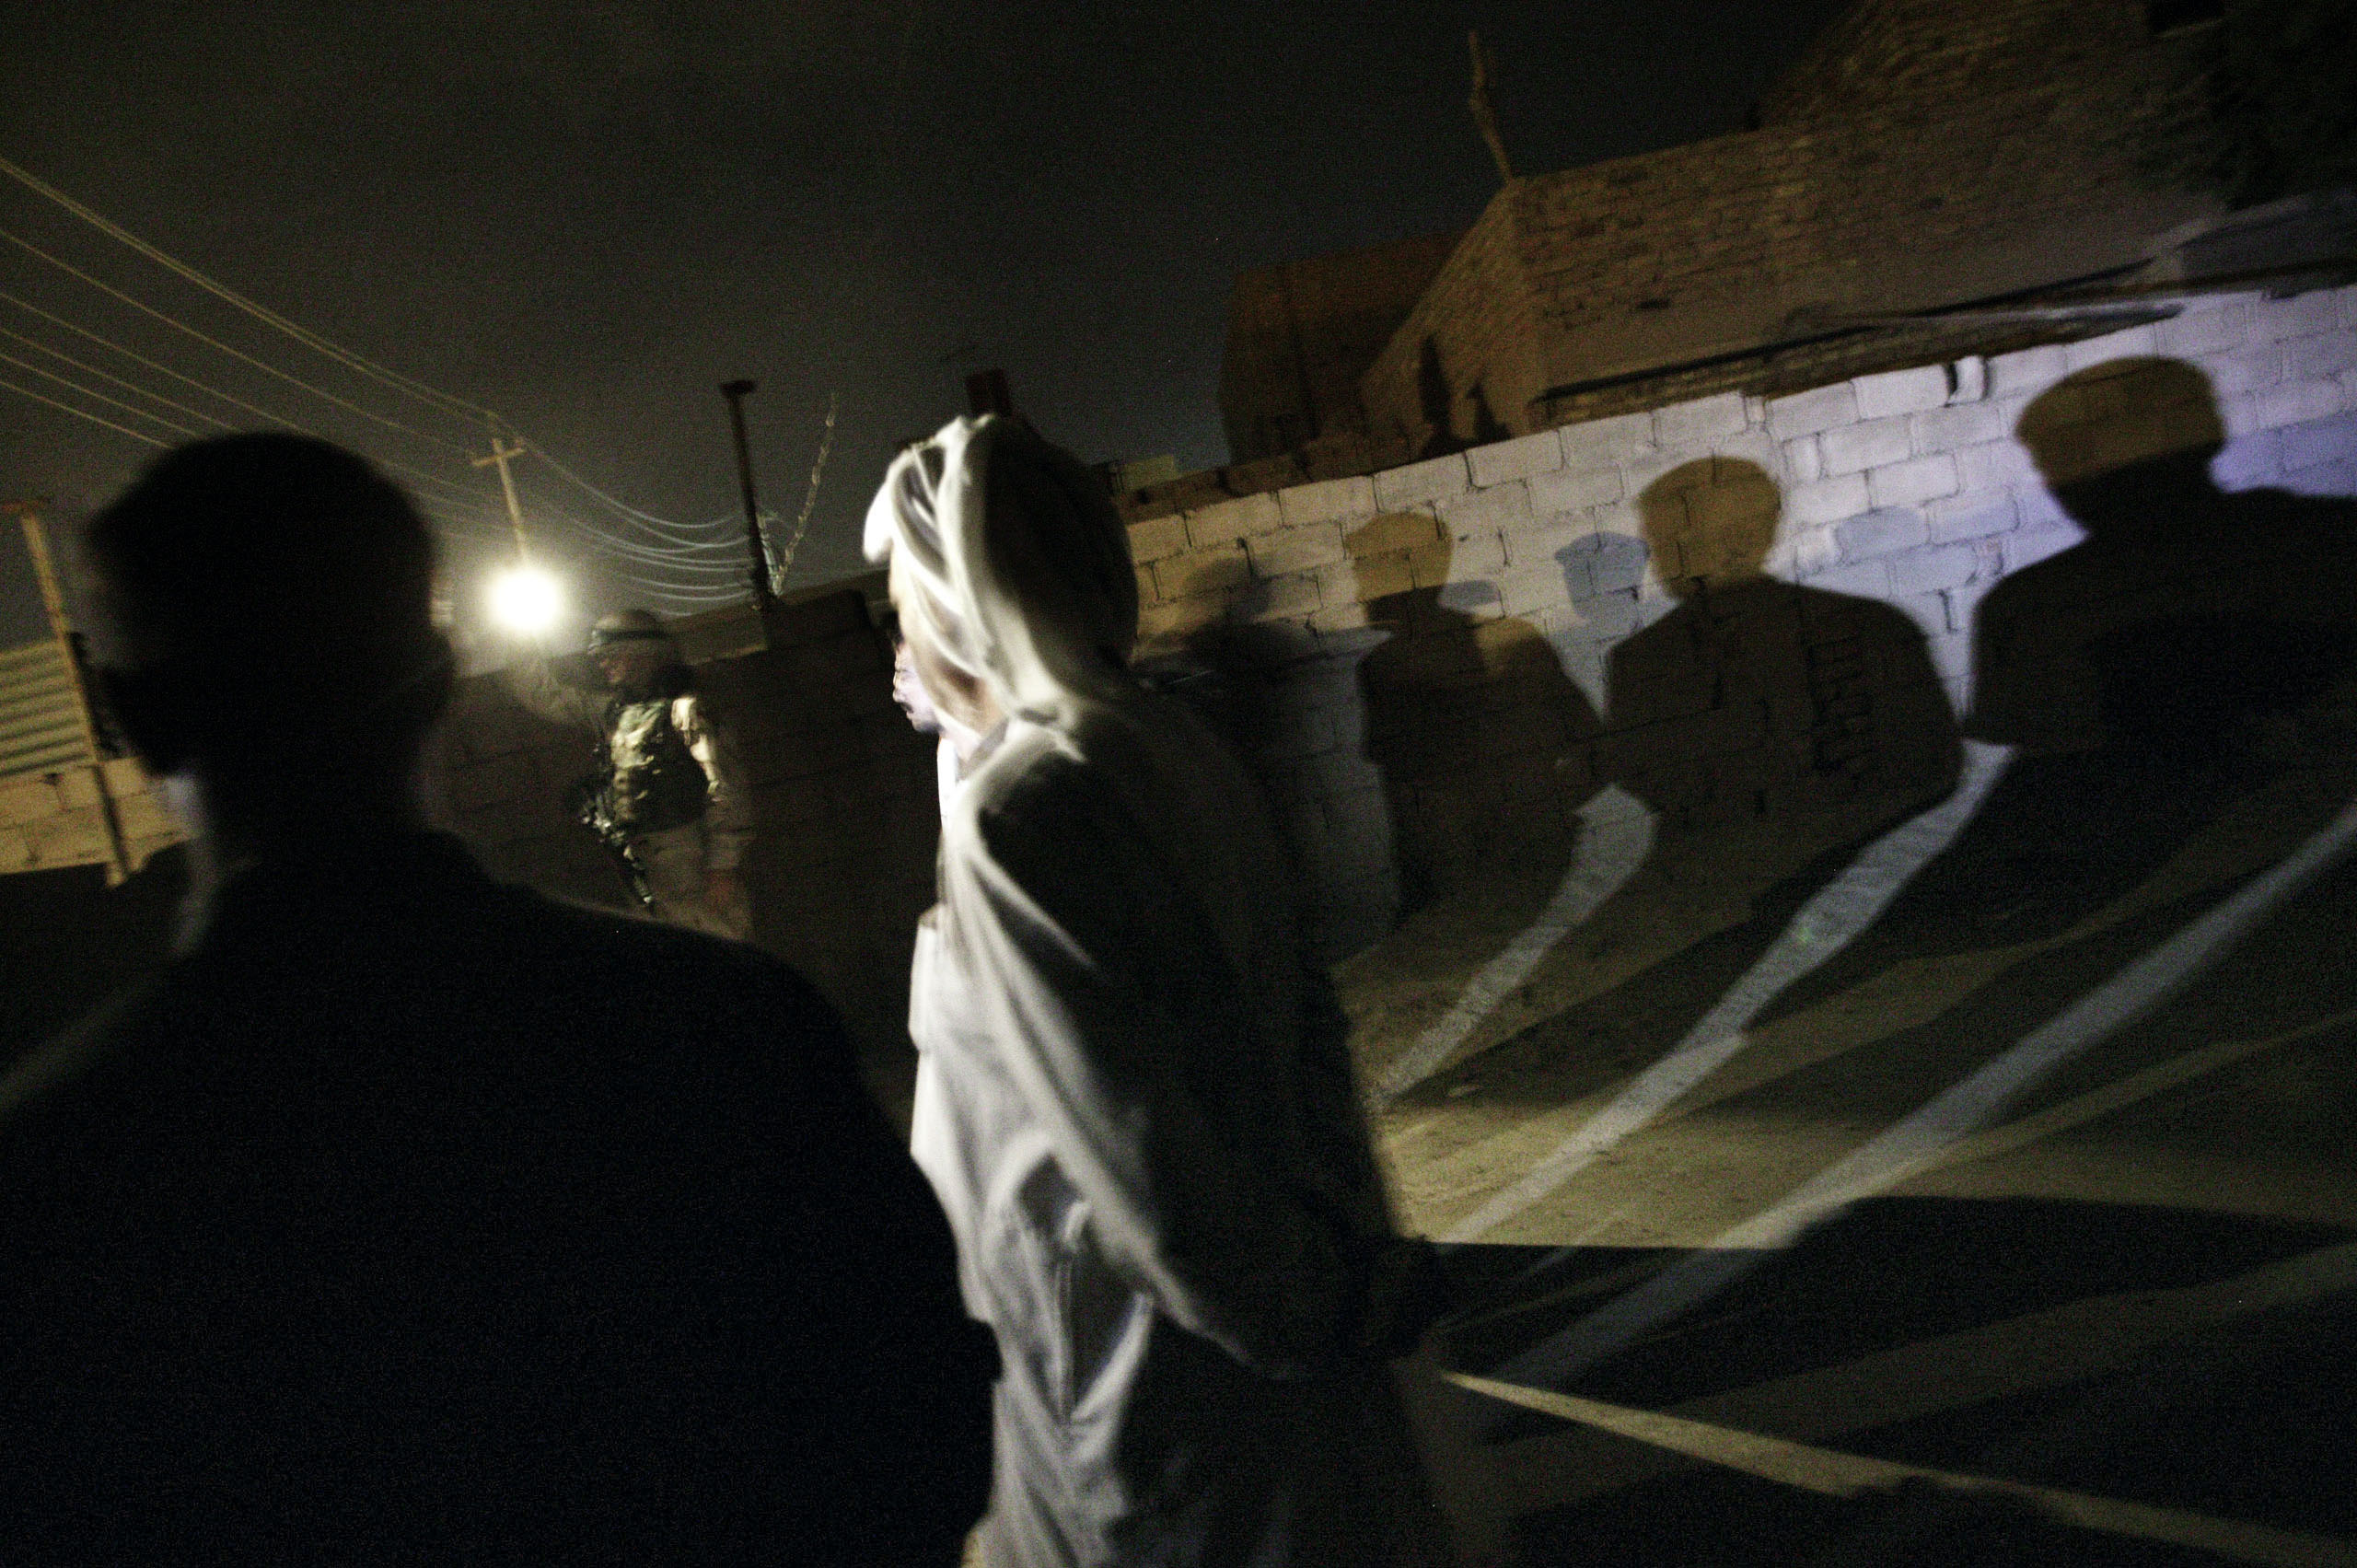 U.S. soldiers from the 2-12 Cavalry Regiment detain men during an early morning raid in the restive Abu Ghraib area of Baghdad, Oct. 20, 2004.